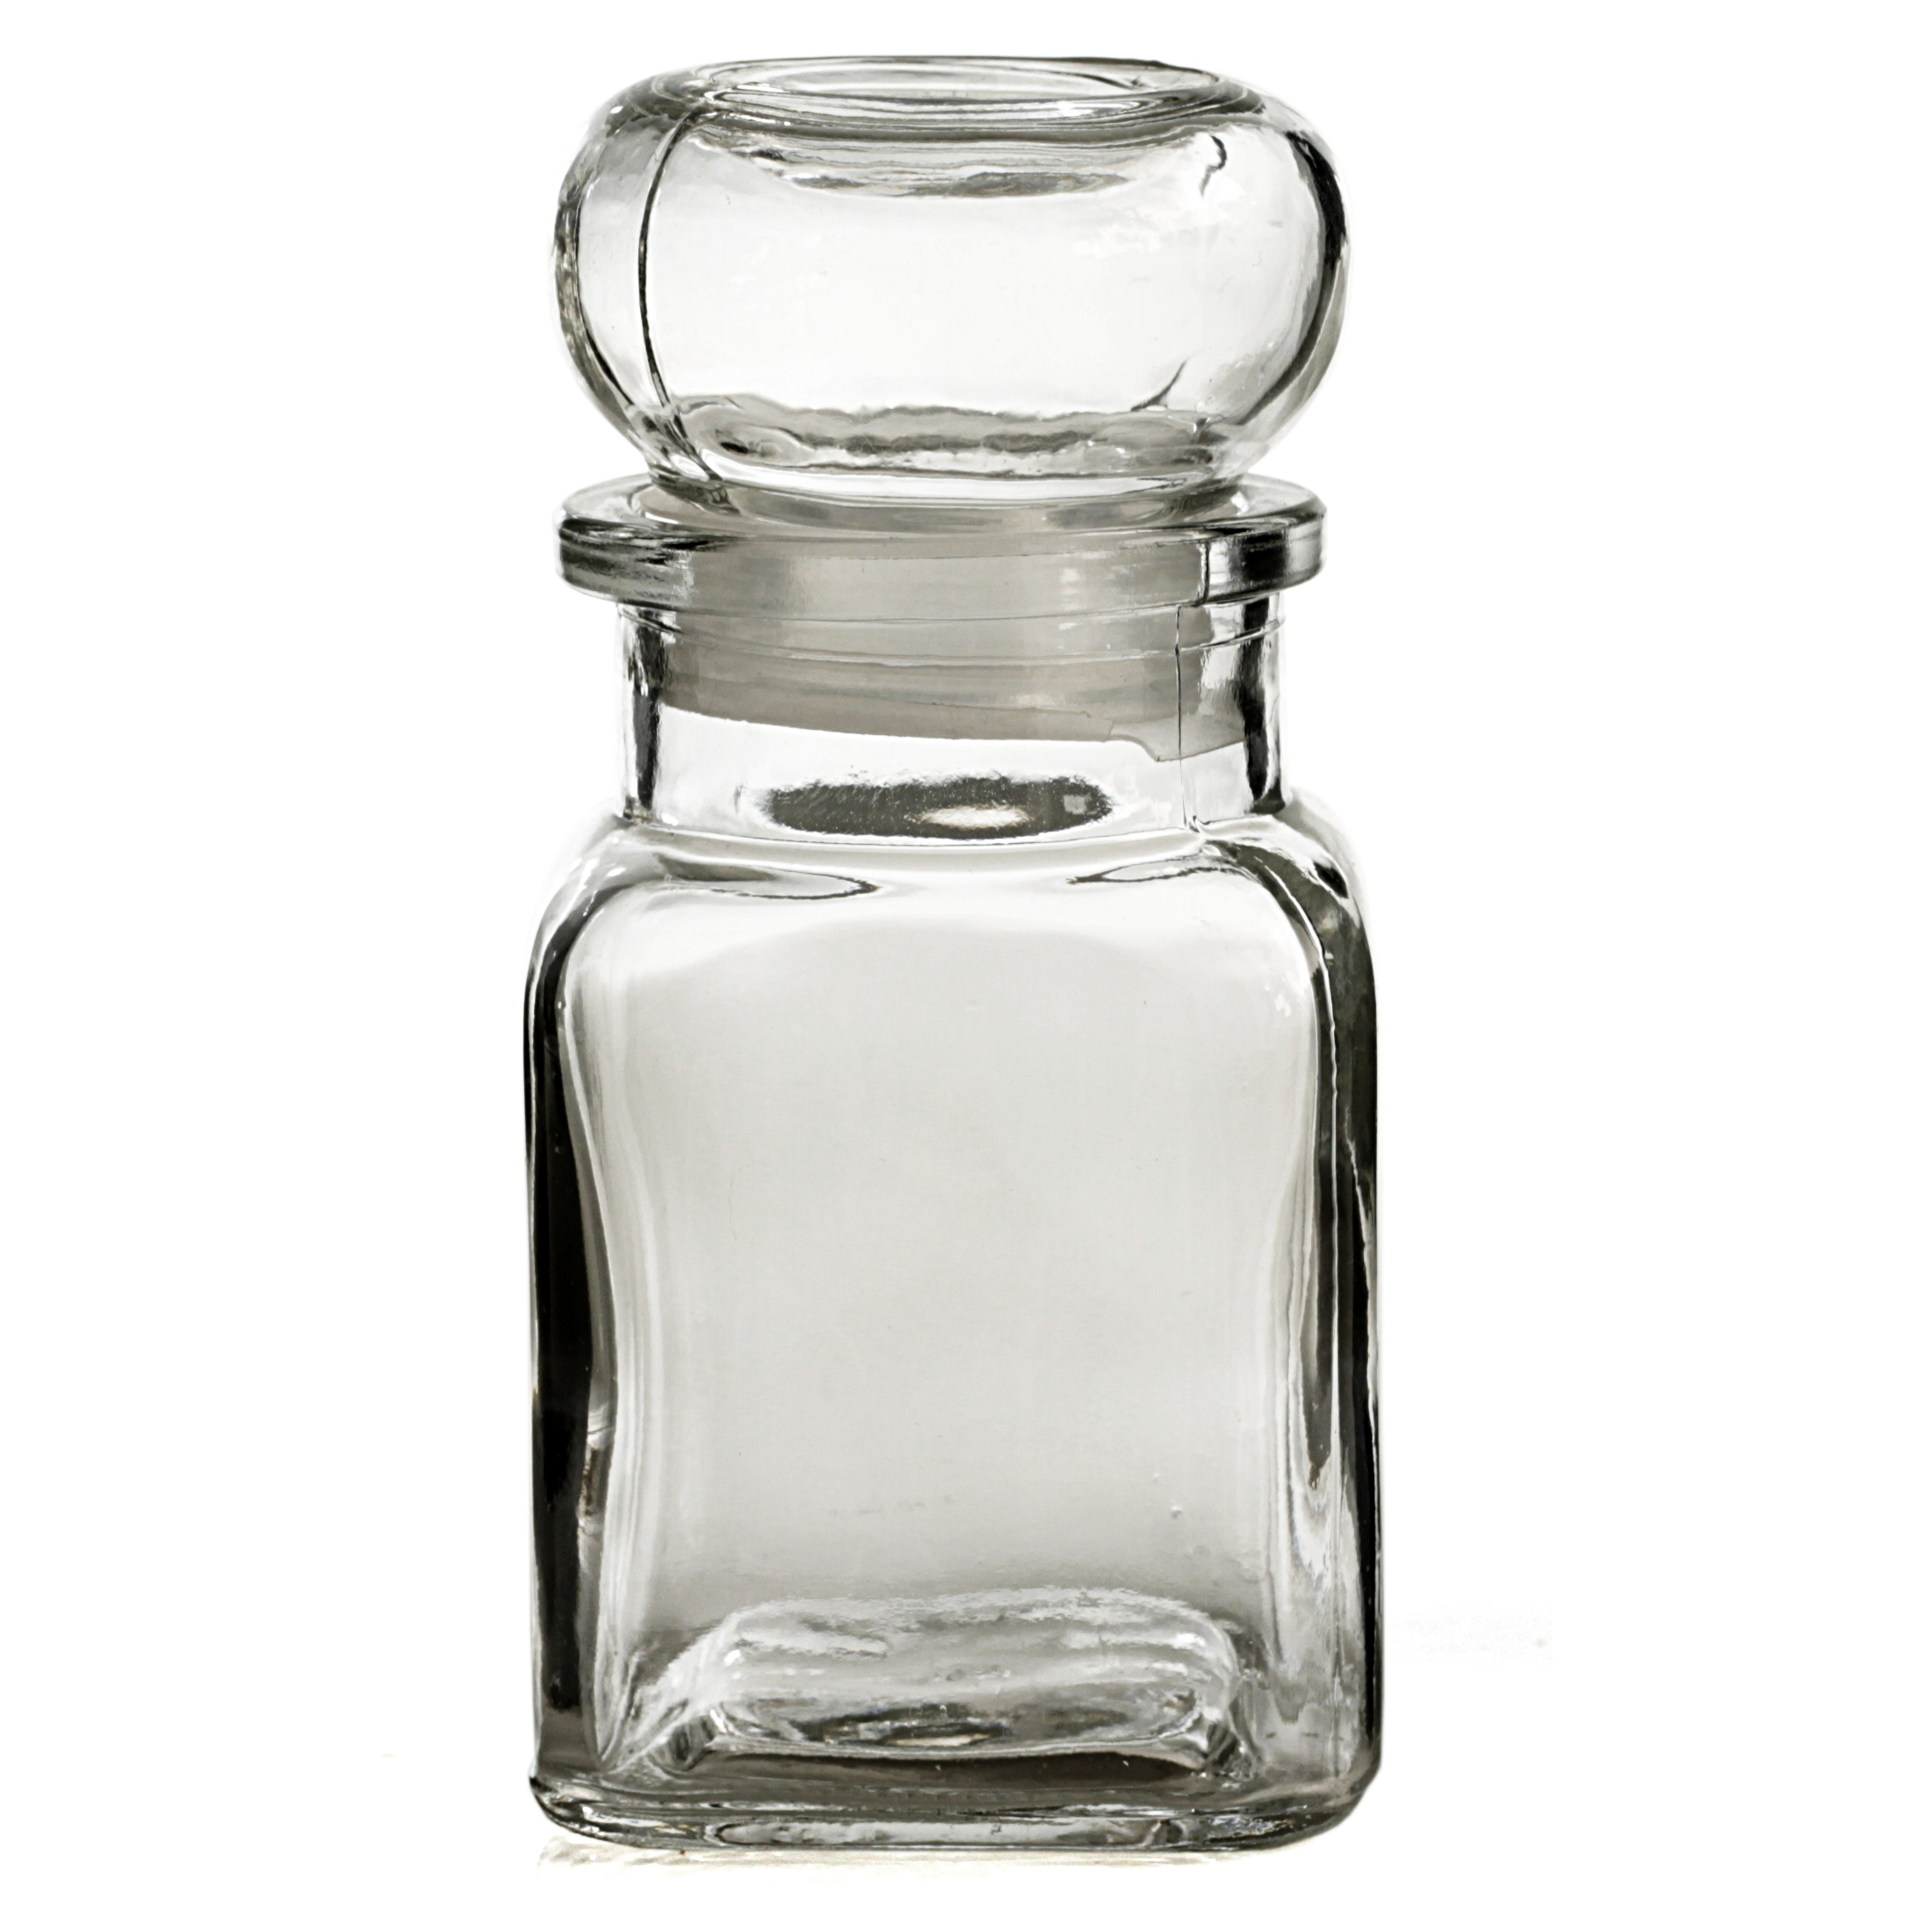 Grant Howard Glass 5 Ounce Square Spice Jar with Bell Top, Set of 12